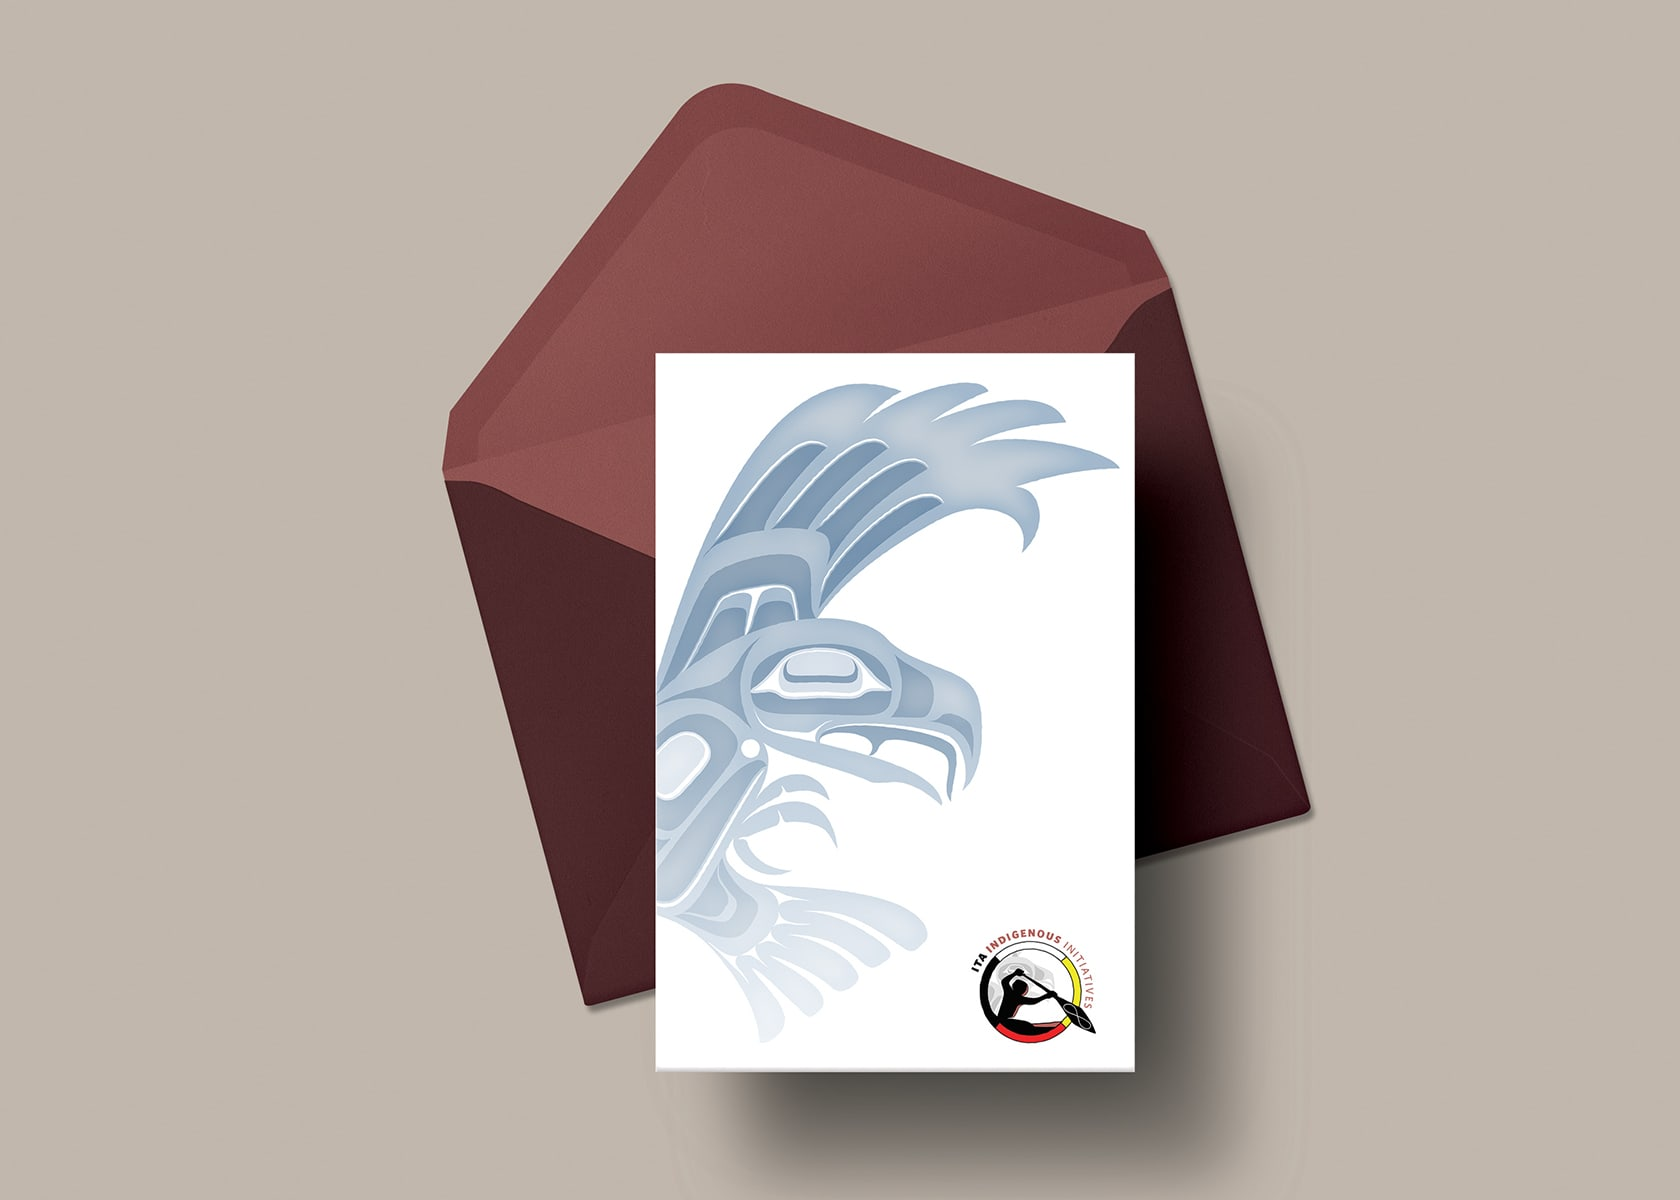 Industry Training Authority - Indigenous Initiatives card and envelope